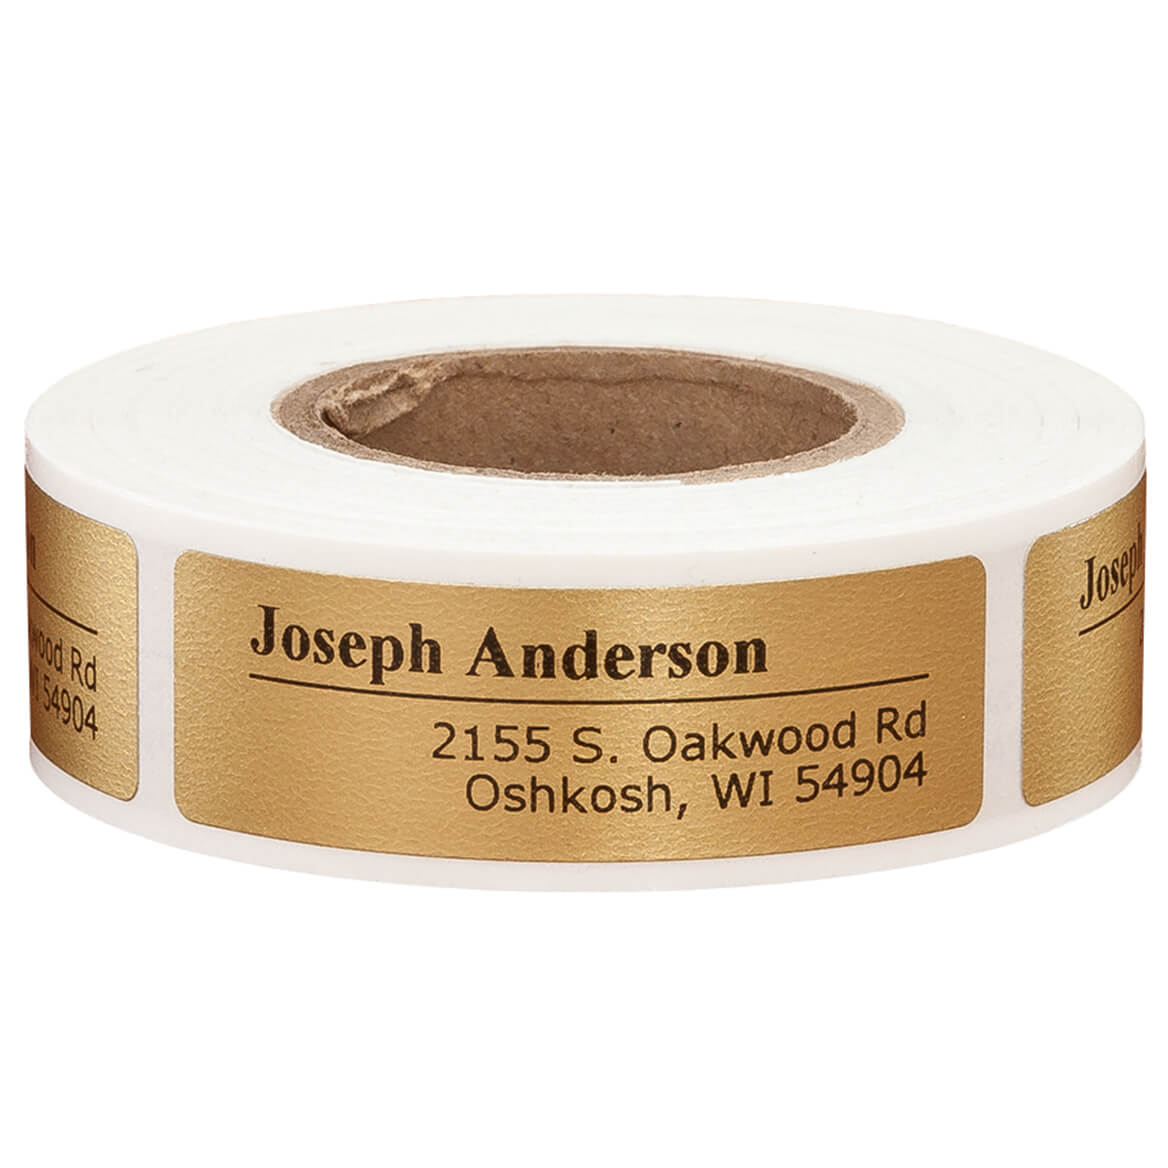 Personalized Off-Centered Address Labels 200